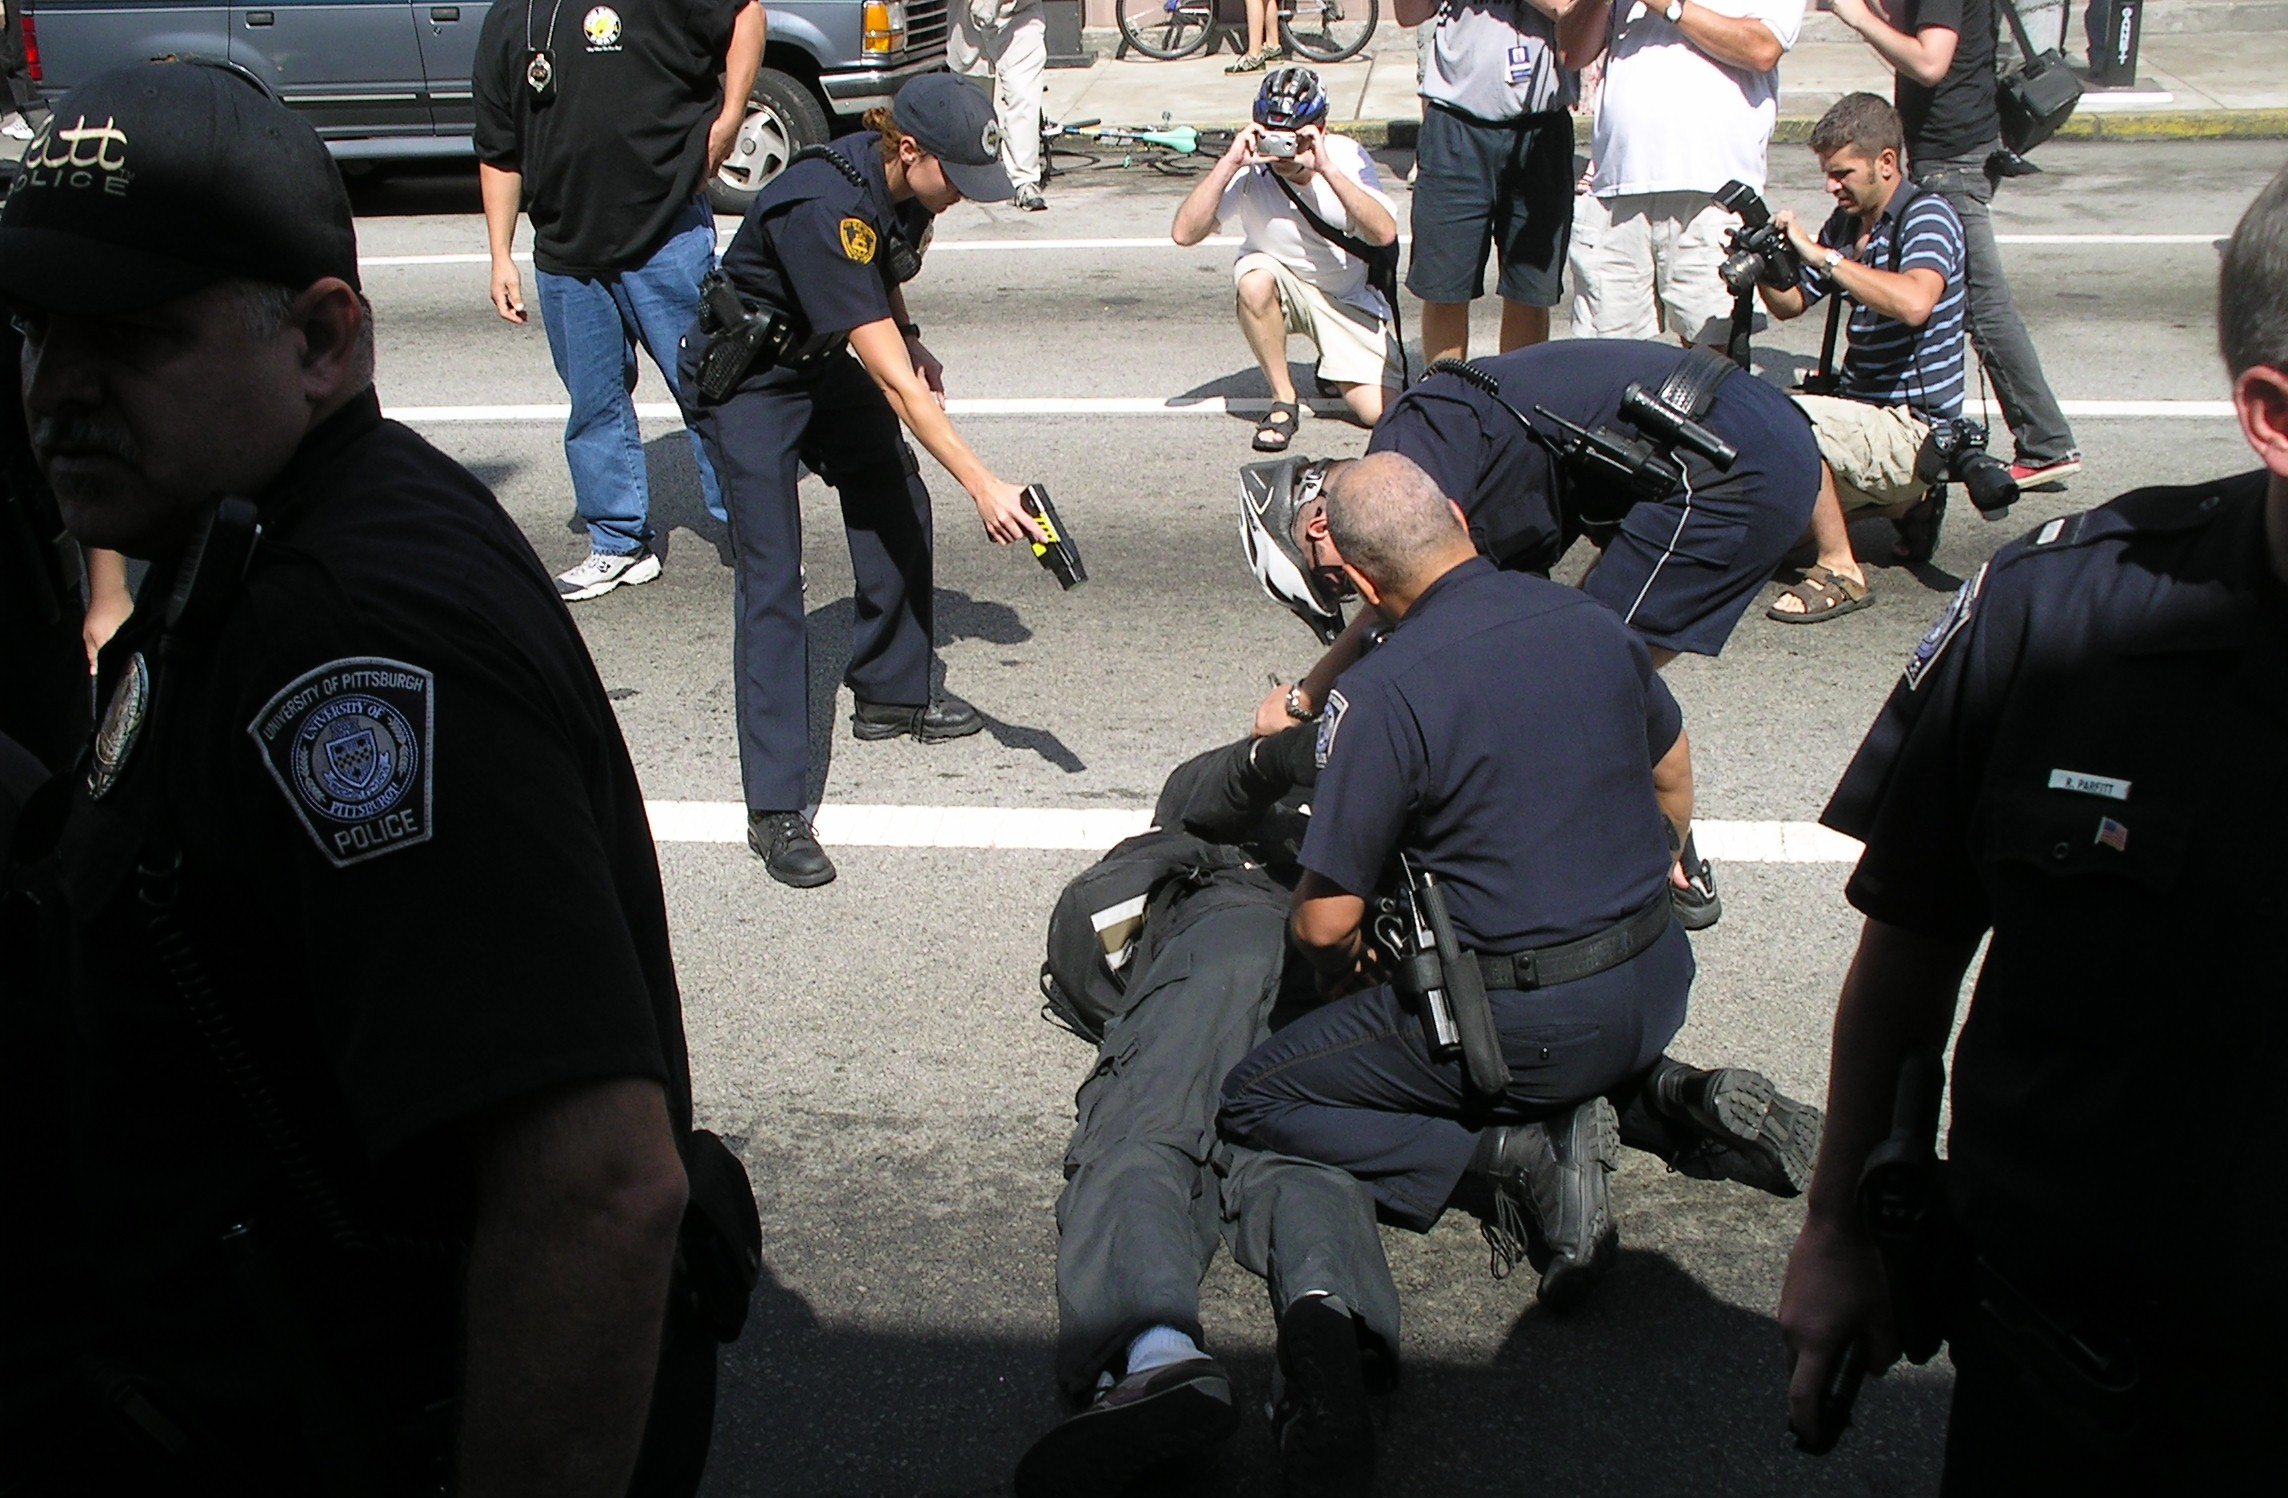 police abuse of discretion Police discretion is a tool used by officers it gives them the ability to utilize the law to the letter or not to enforce it to the letter of the law some say that latitude in decision making by frontline staff is one of the defining characteristics of human service organizations.